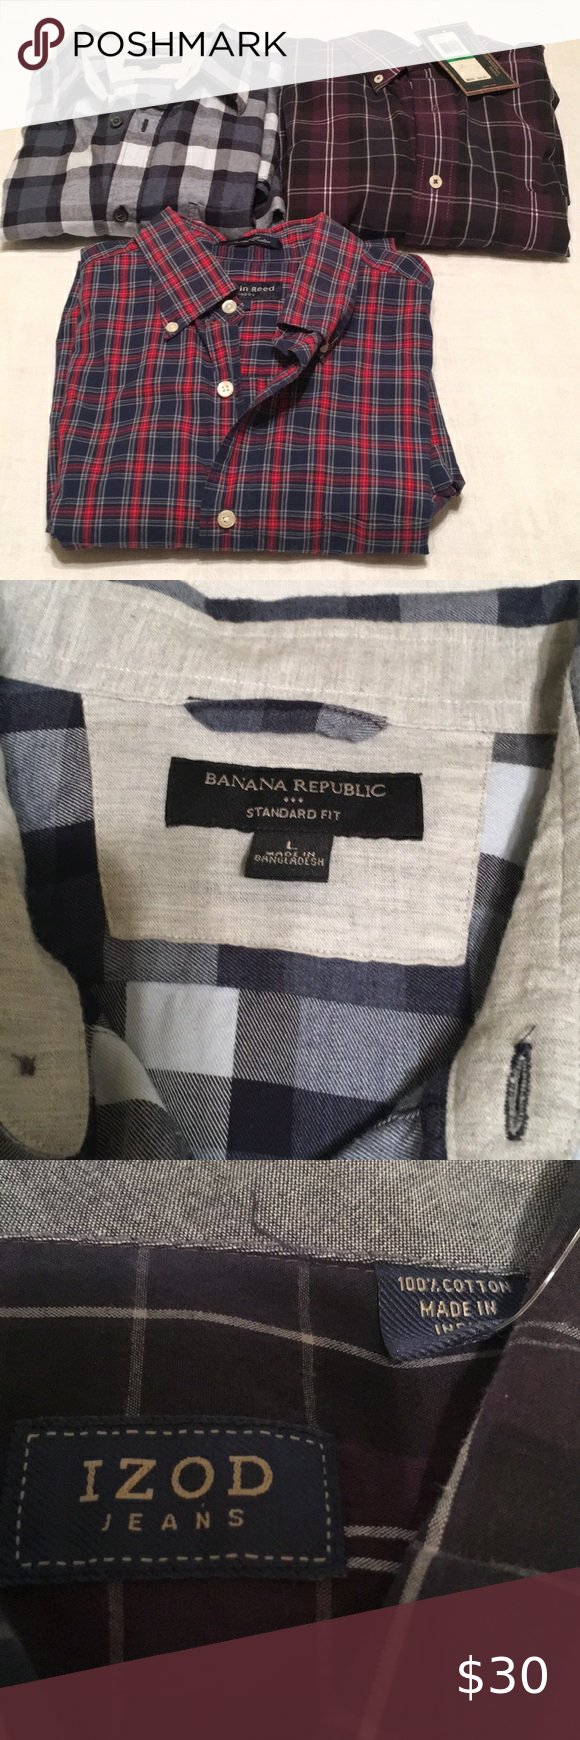 3 Men S Shirts A 34 3 Men S Shirts All For One Price Austin Reed Of London Banana Republic Izod Various Shirts Casual But Colorful Shirts Clothes Design Shirts